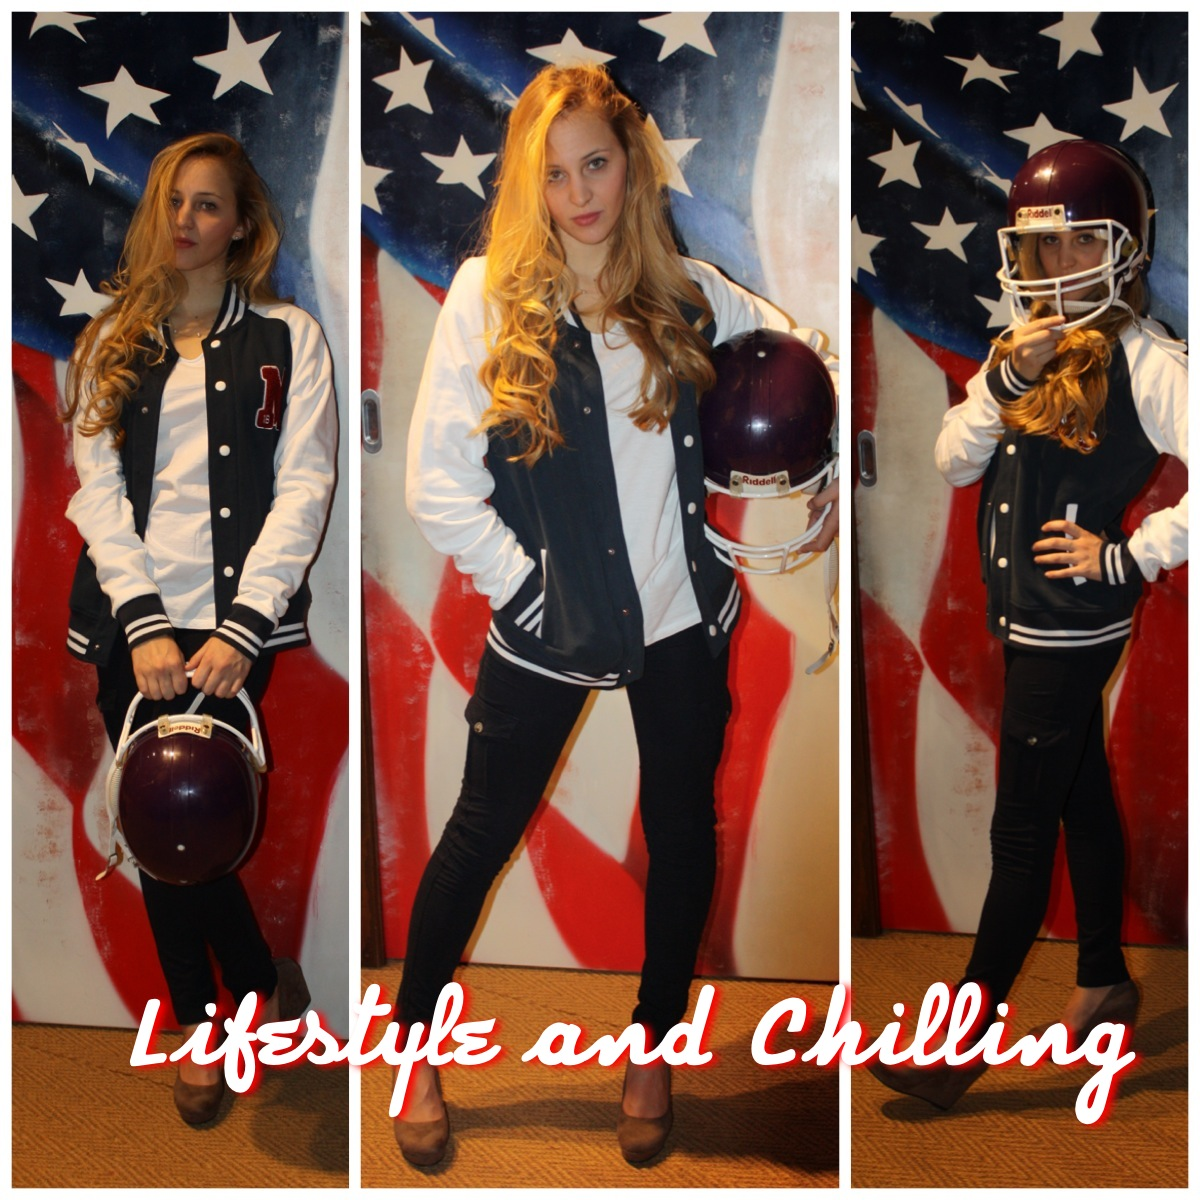 lifestyleandchilling for Manhattan College Store